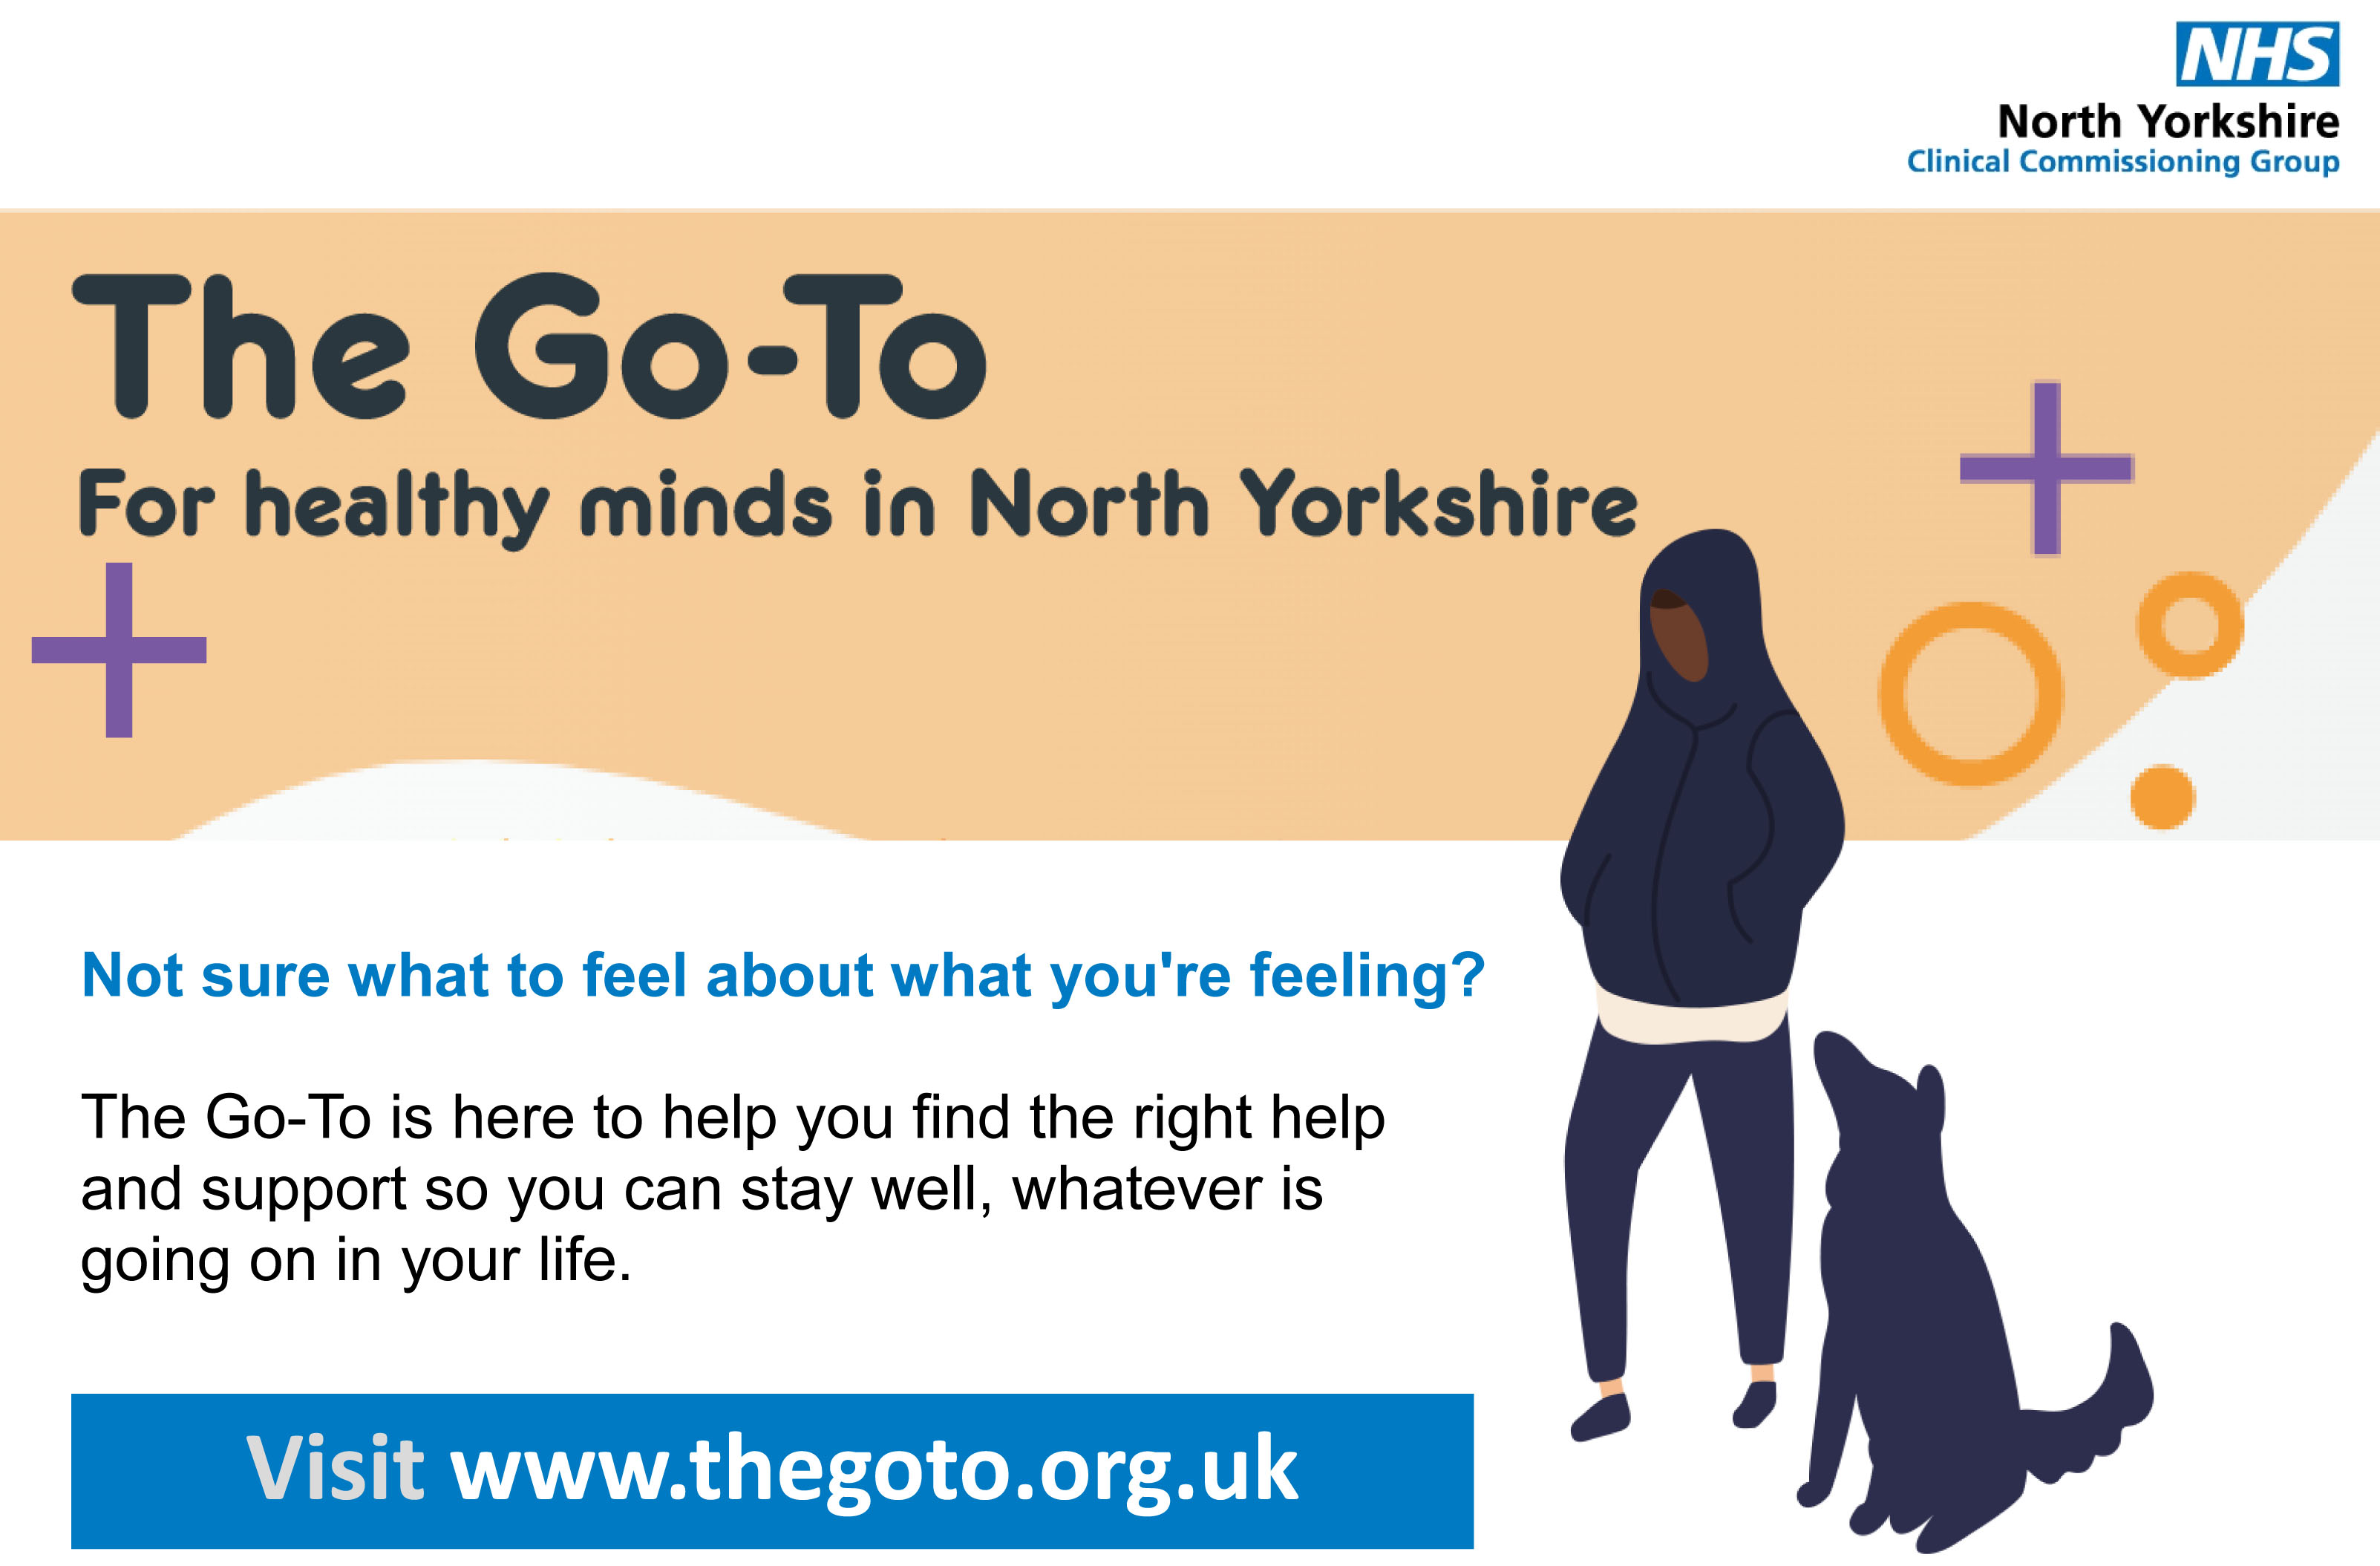 The go to.  For healthy minds in North Yorkshire.  Not sure what to feel about what you are feeling? The Go-To is here to help you find the right help and support so you can stay well, whatever is going on in your life